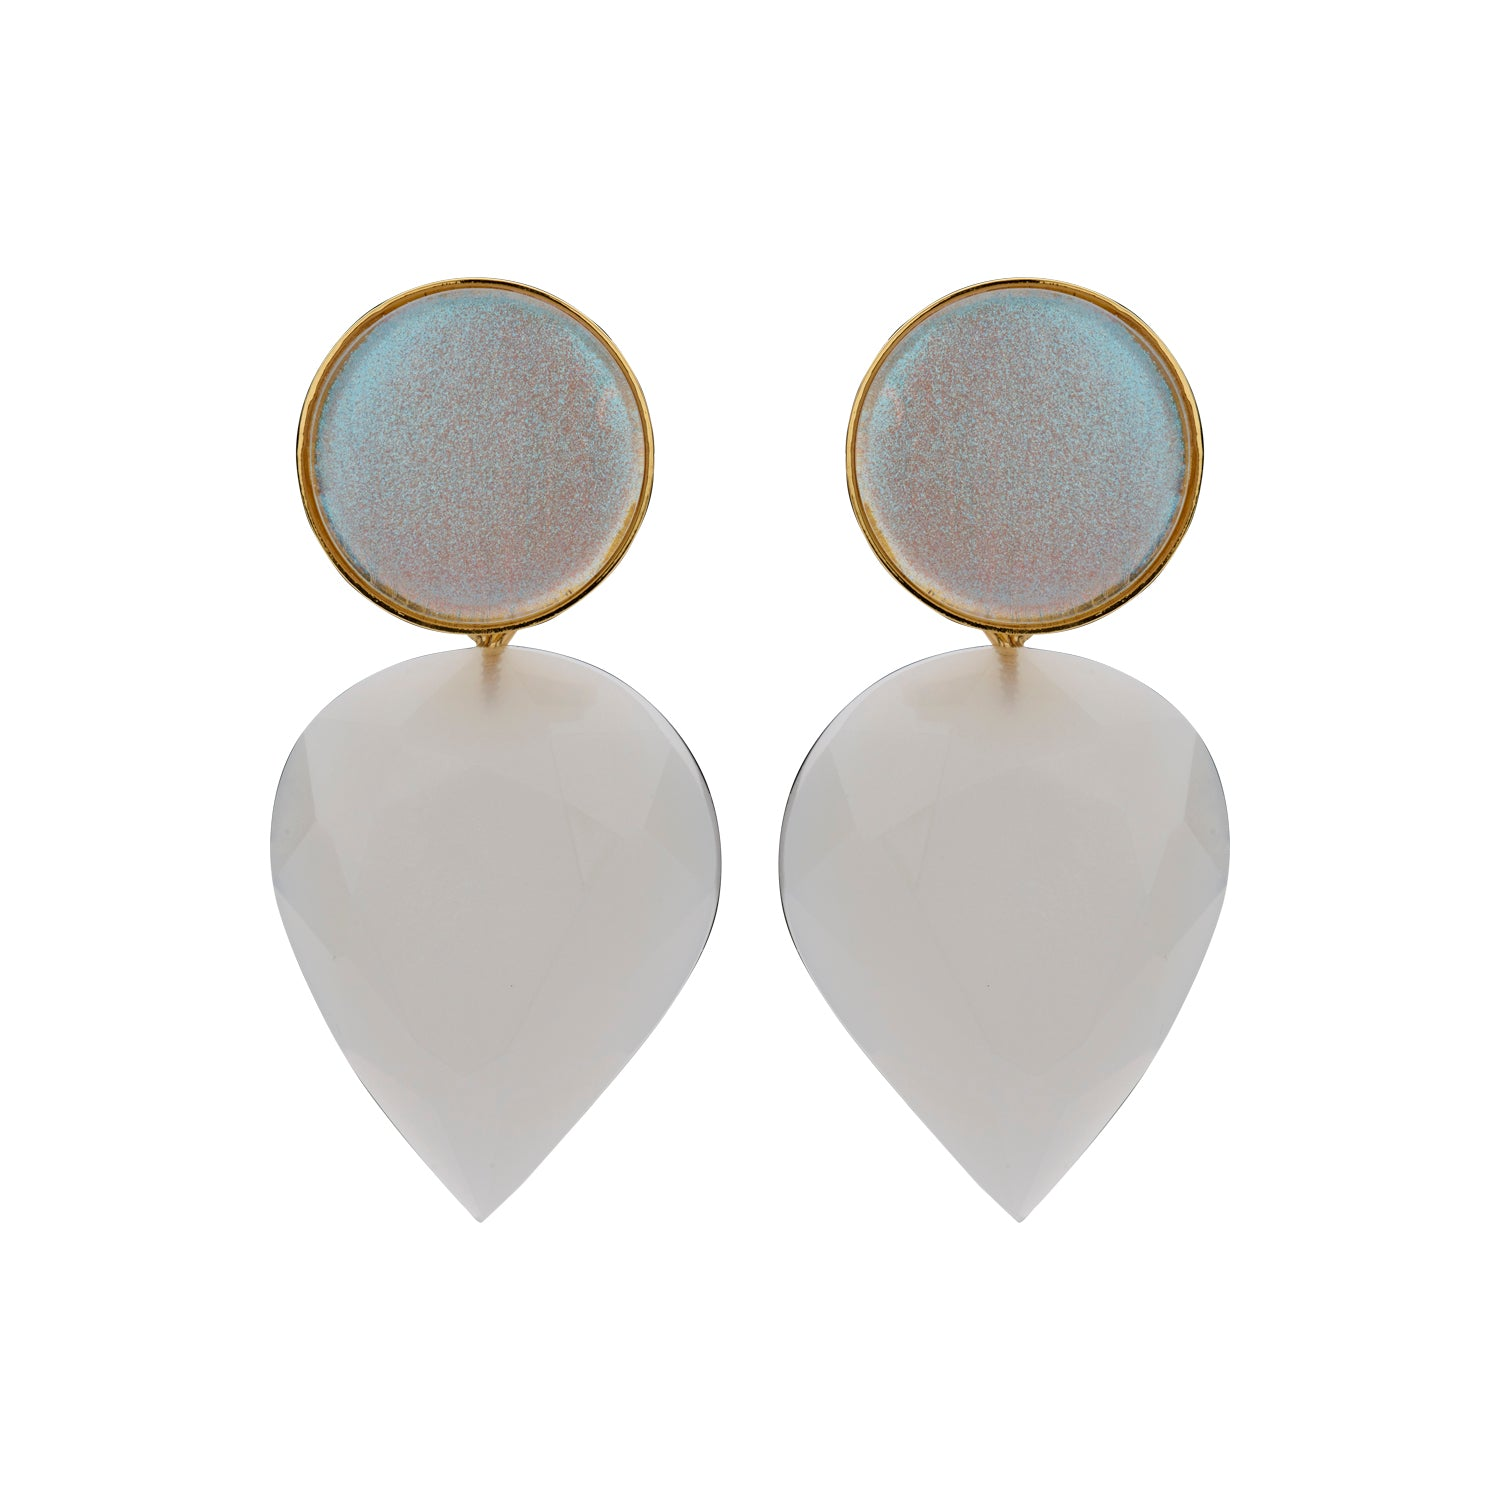 Paola ecru earrings - Souvenirs de Pomme